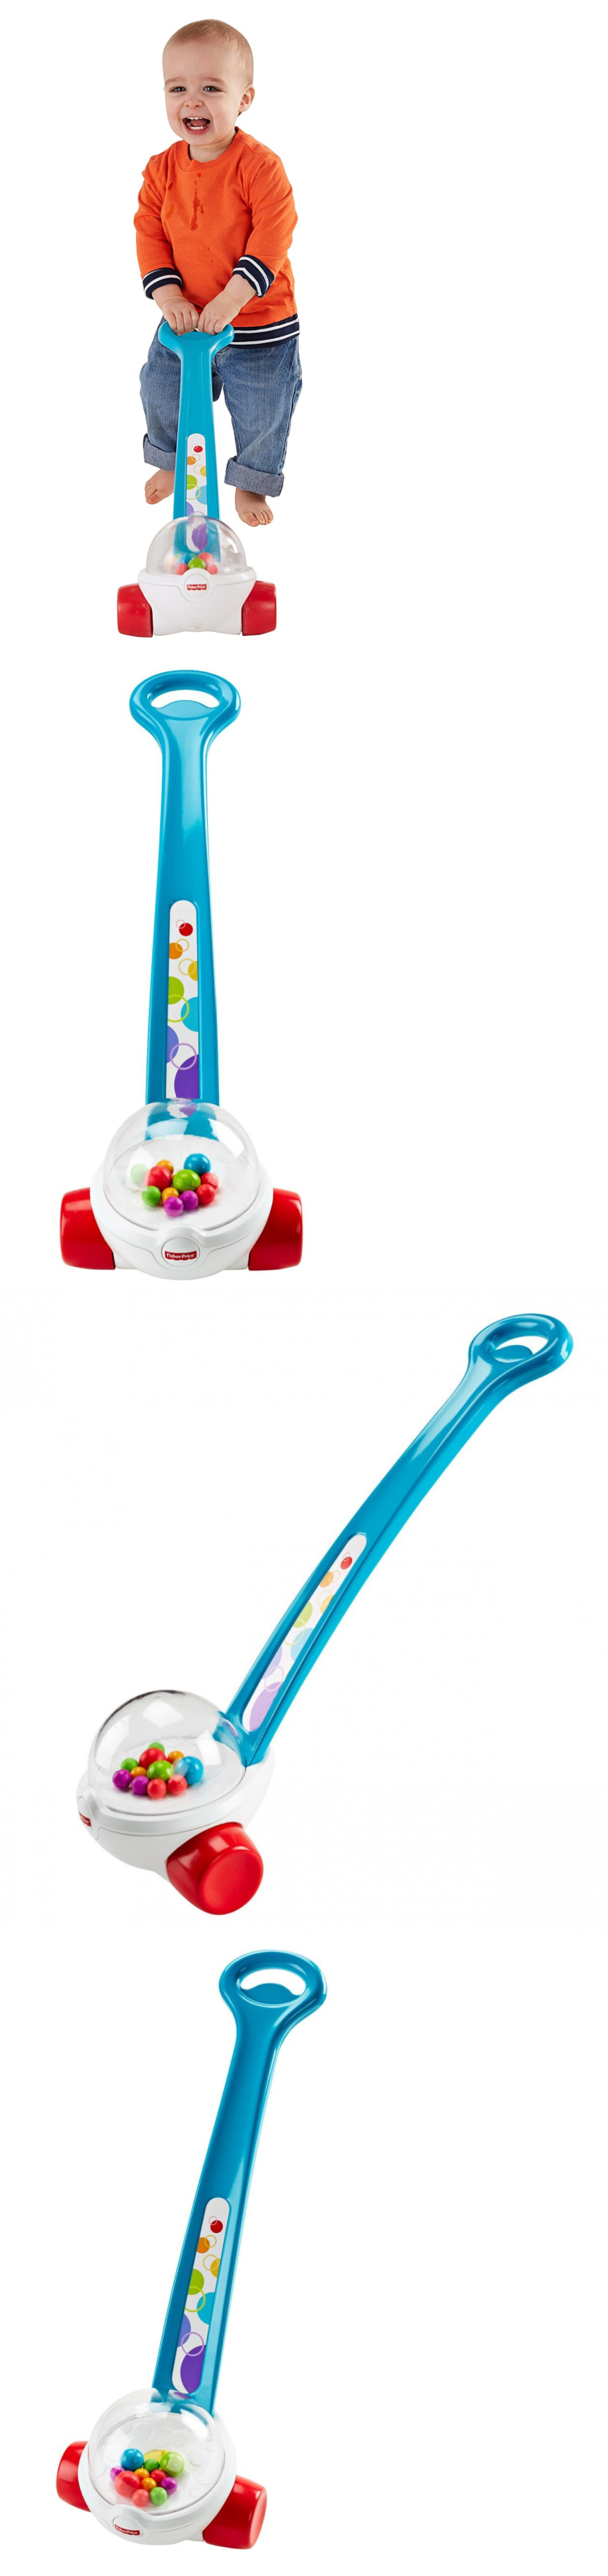 Other Fisher Price Pre 1963 2529 Baby Push Toy Corn Popper